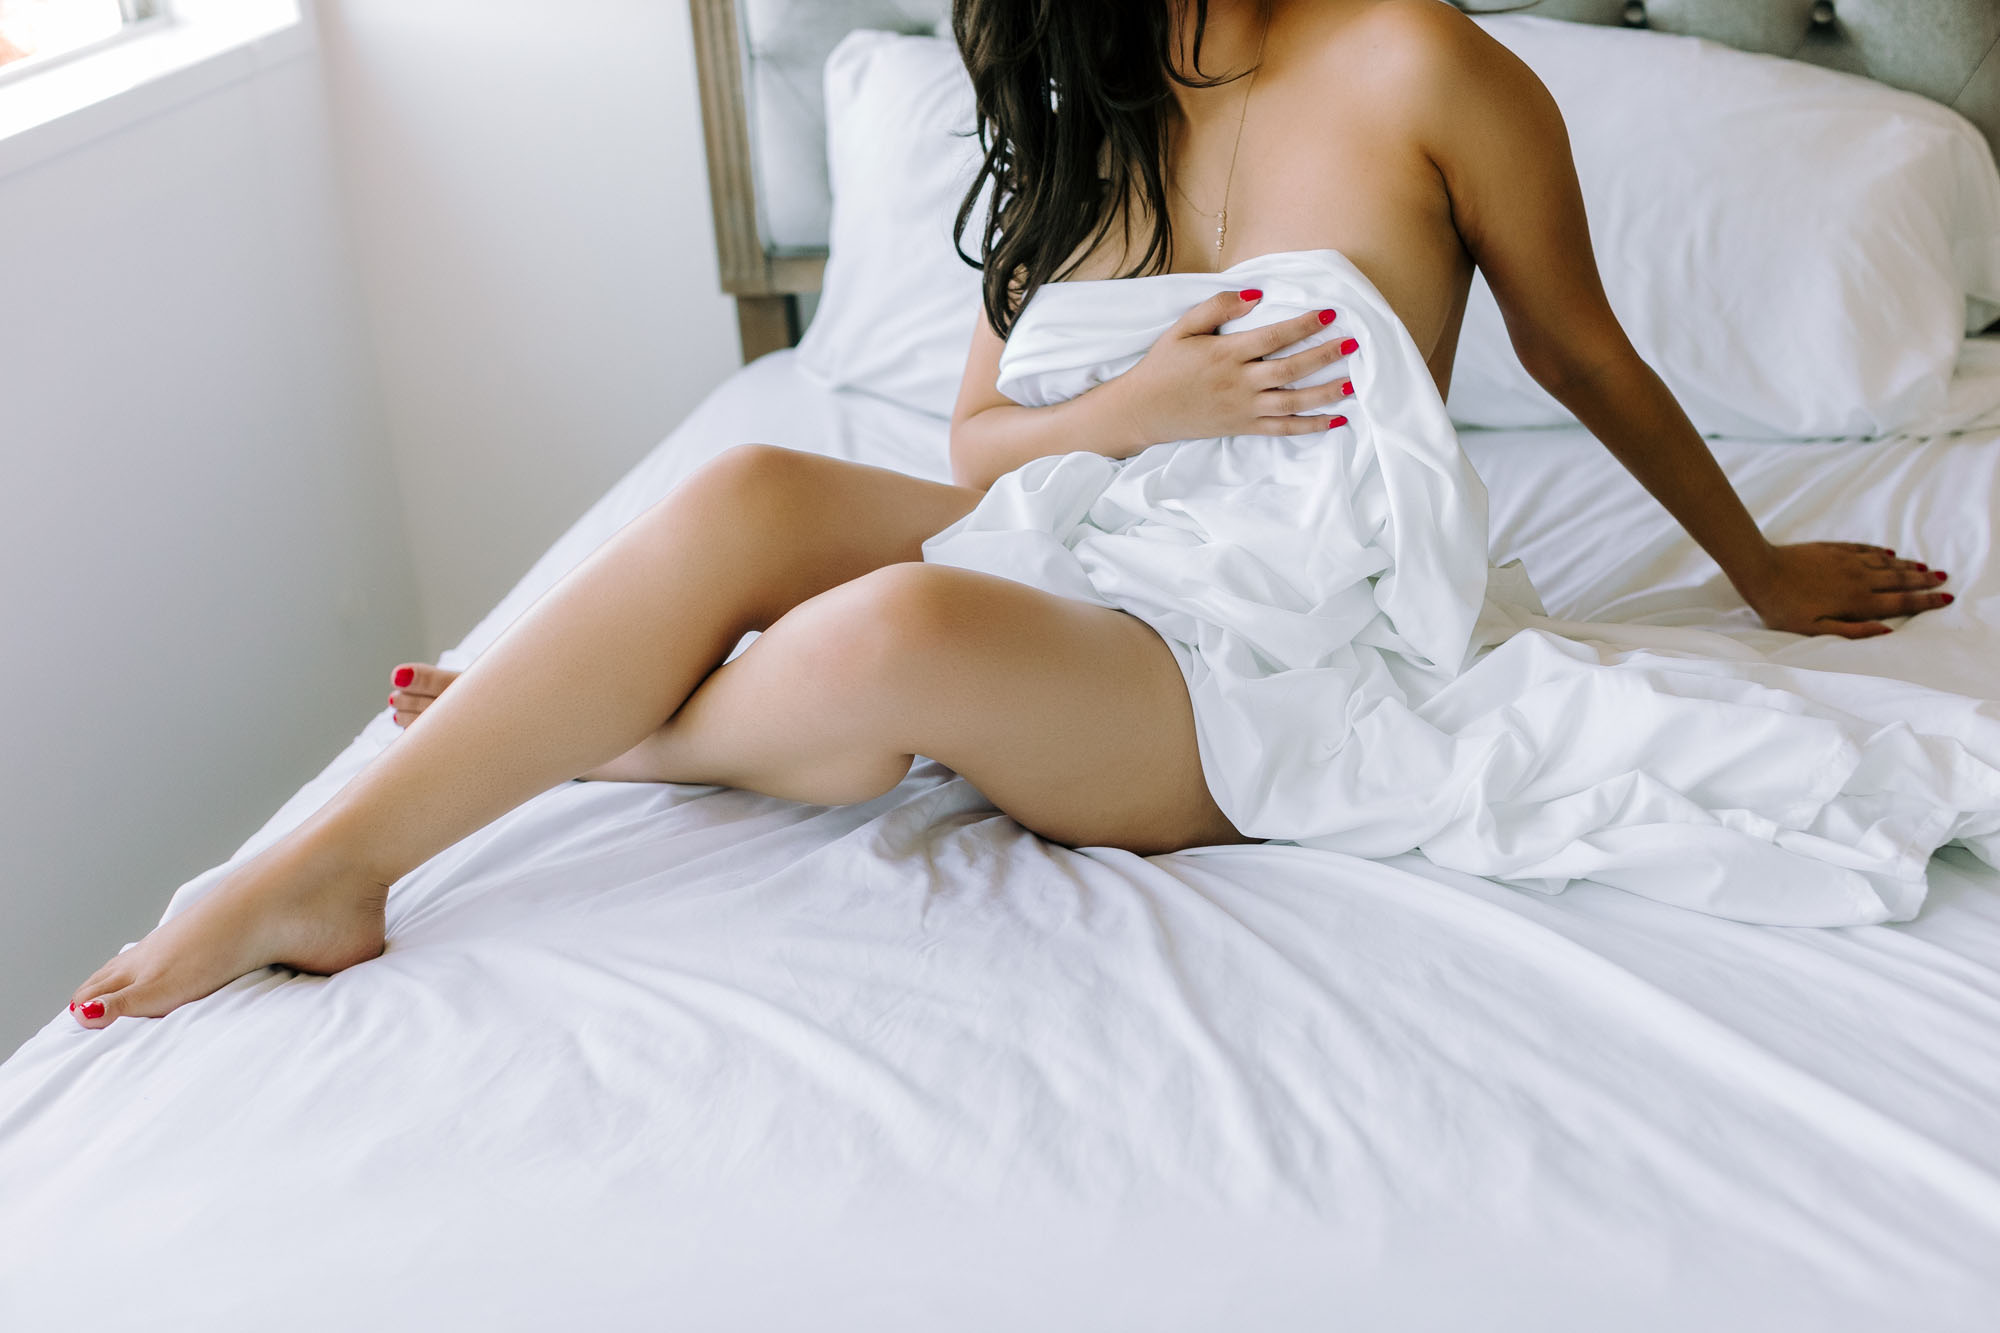 fine_art_nude_boudoir_photography_red_nails_white_sheets_anonymous.jpg